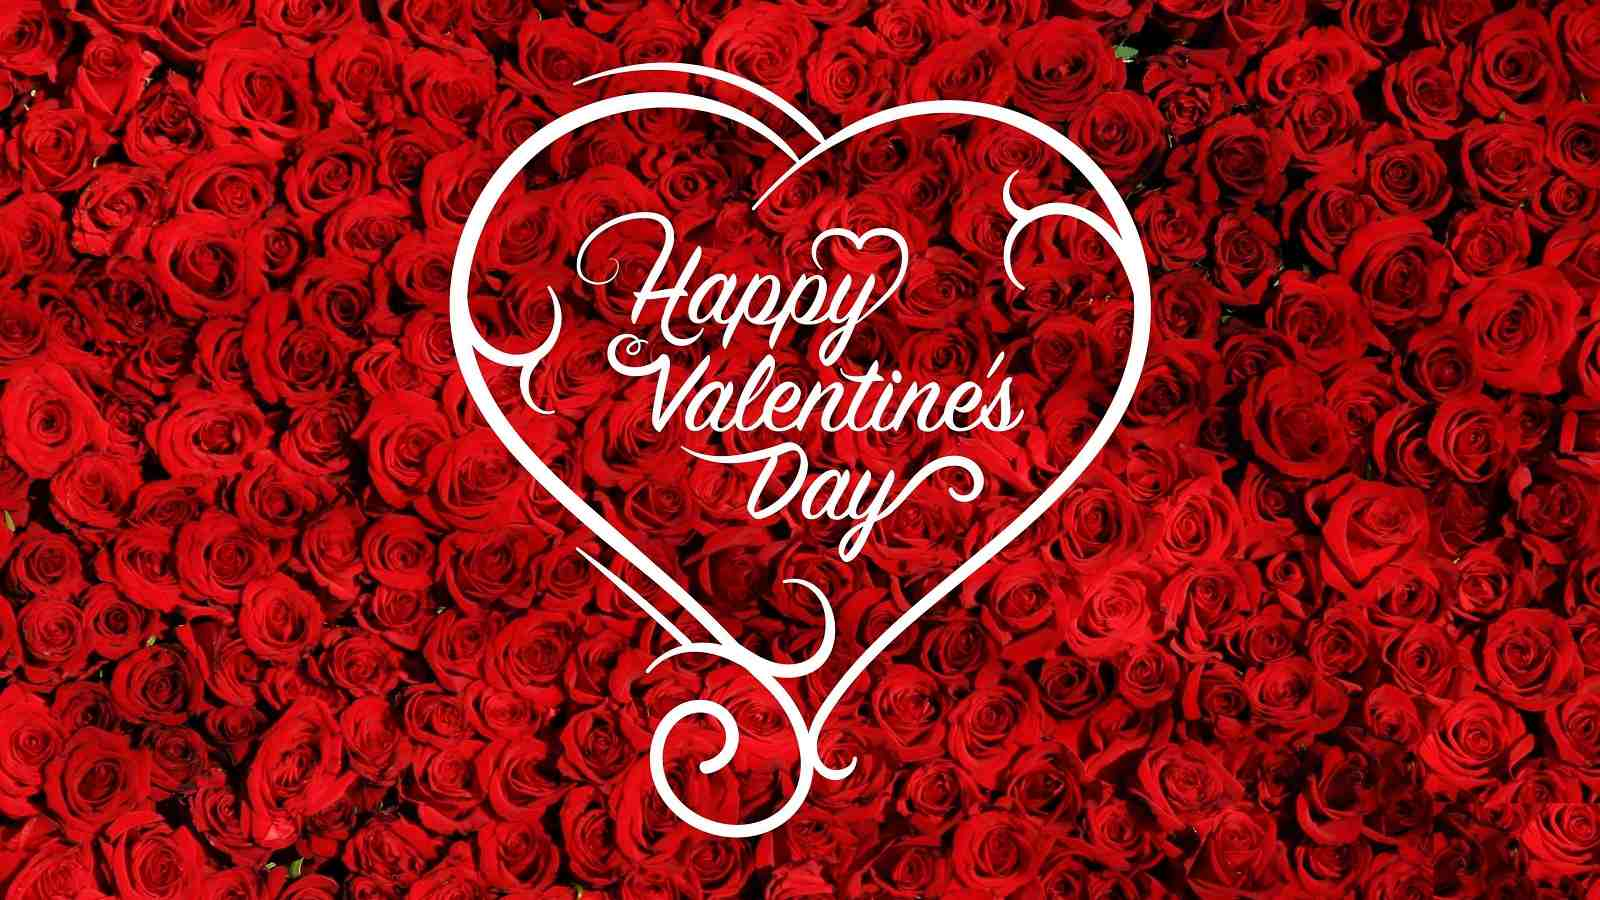 Valentine's Day 2020: Wishes, Quotes, Image, History and Details